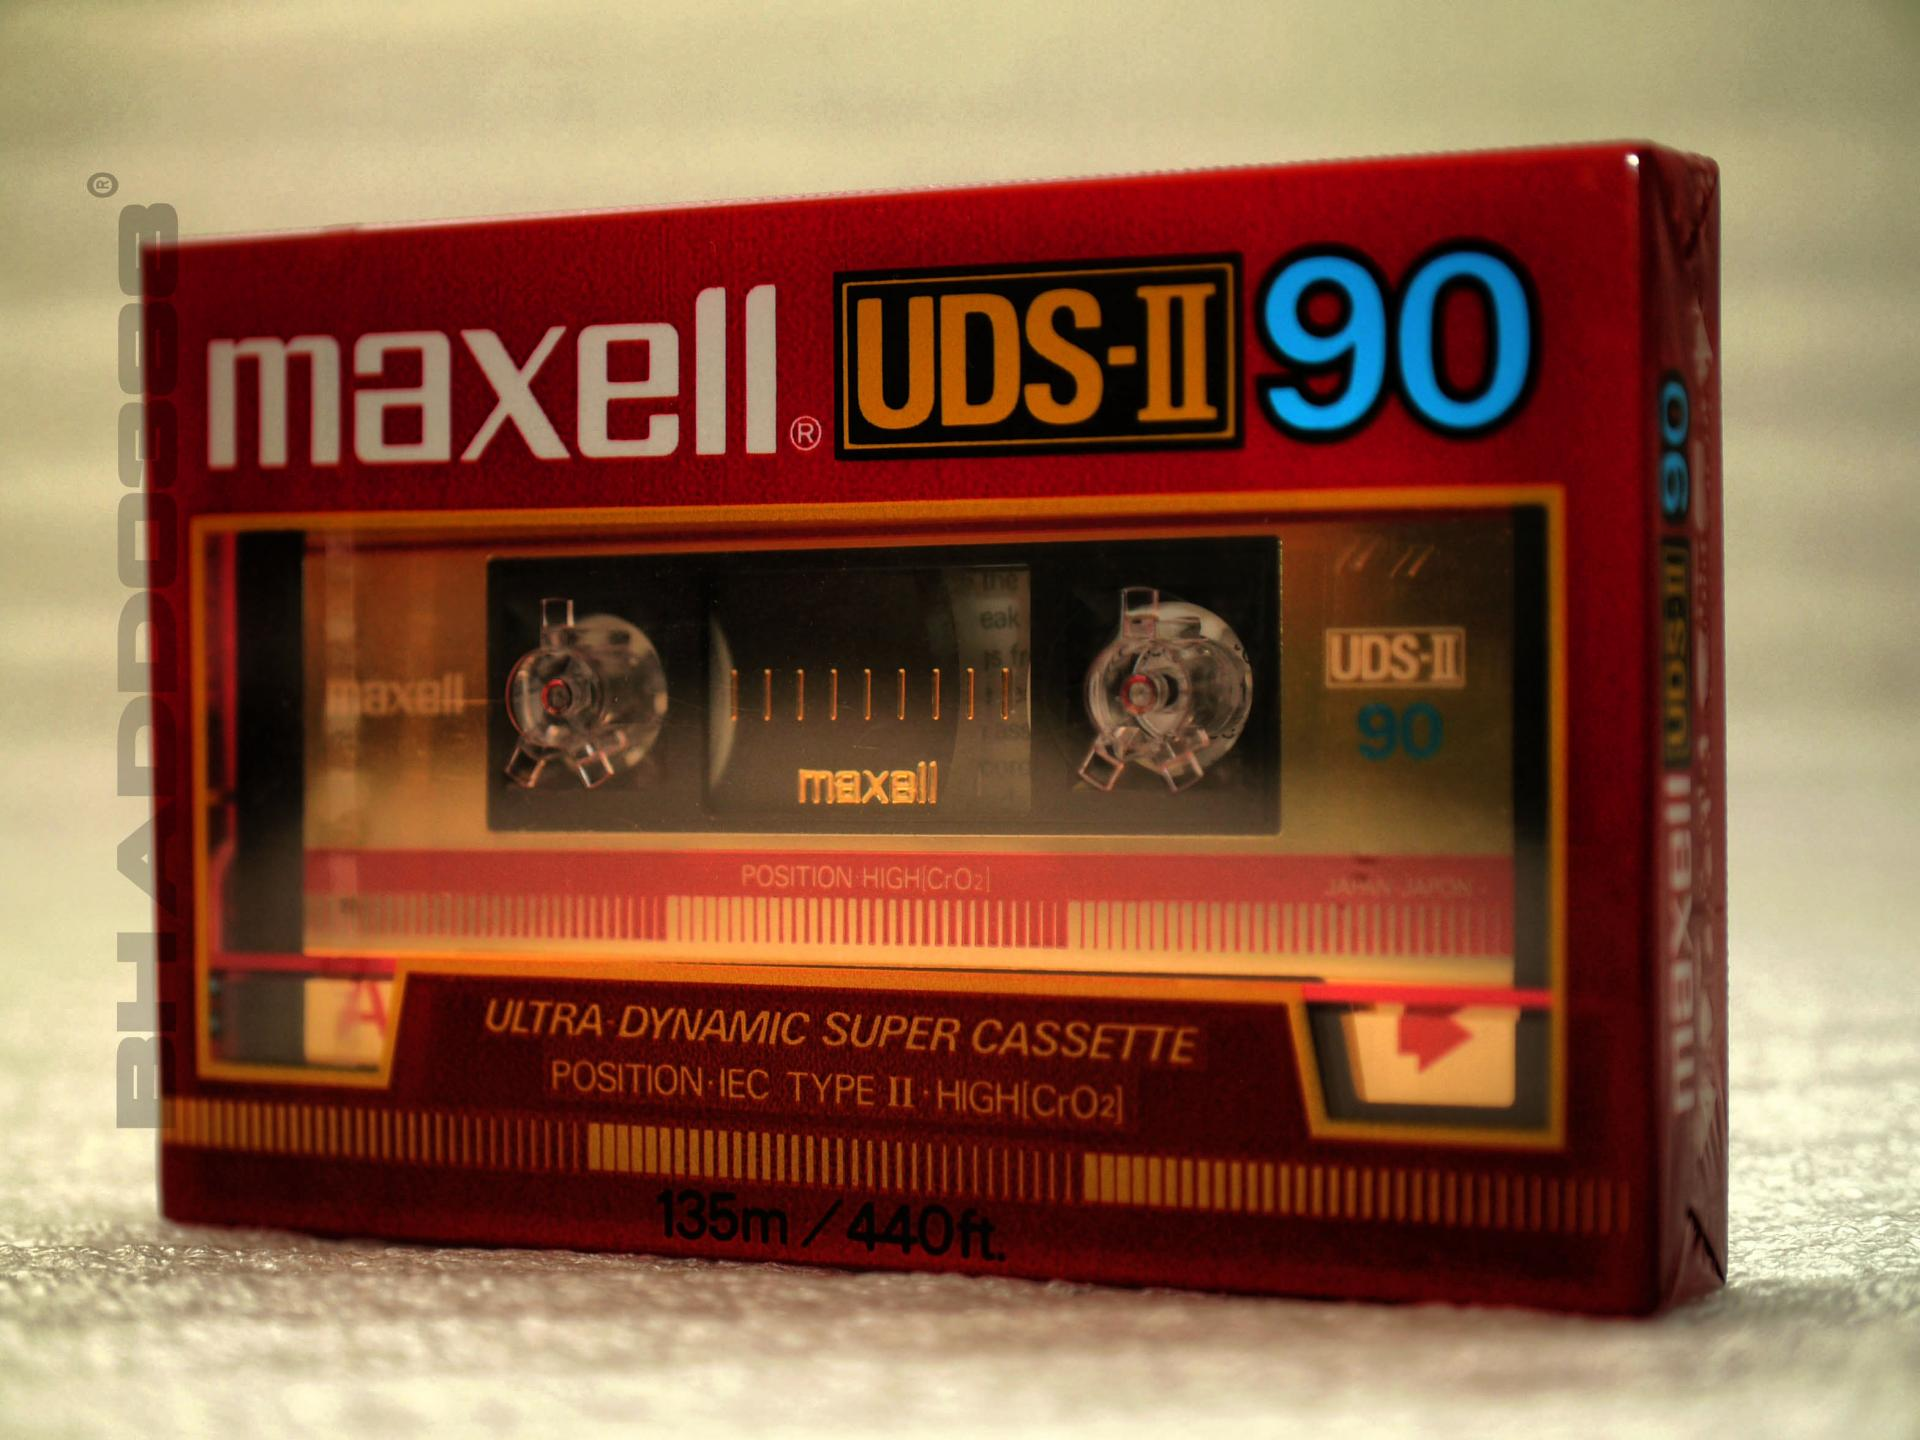 MAXELL UDS 2 90